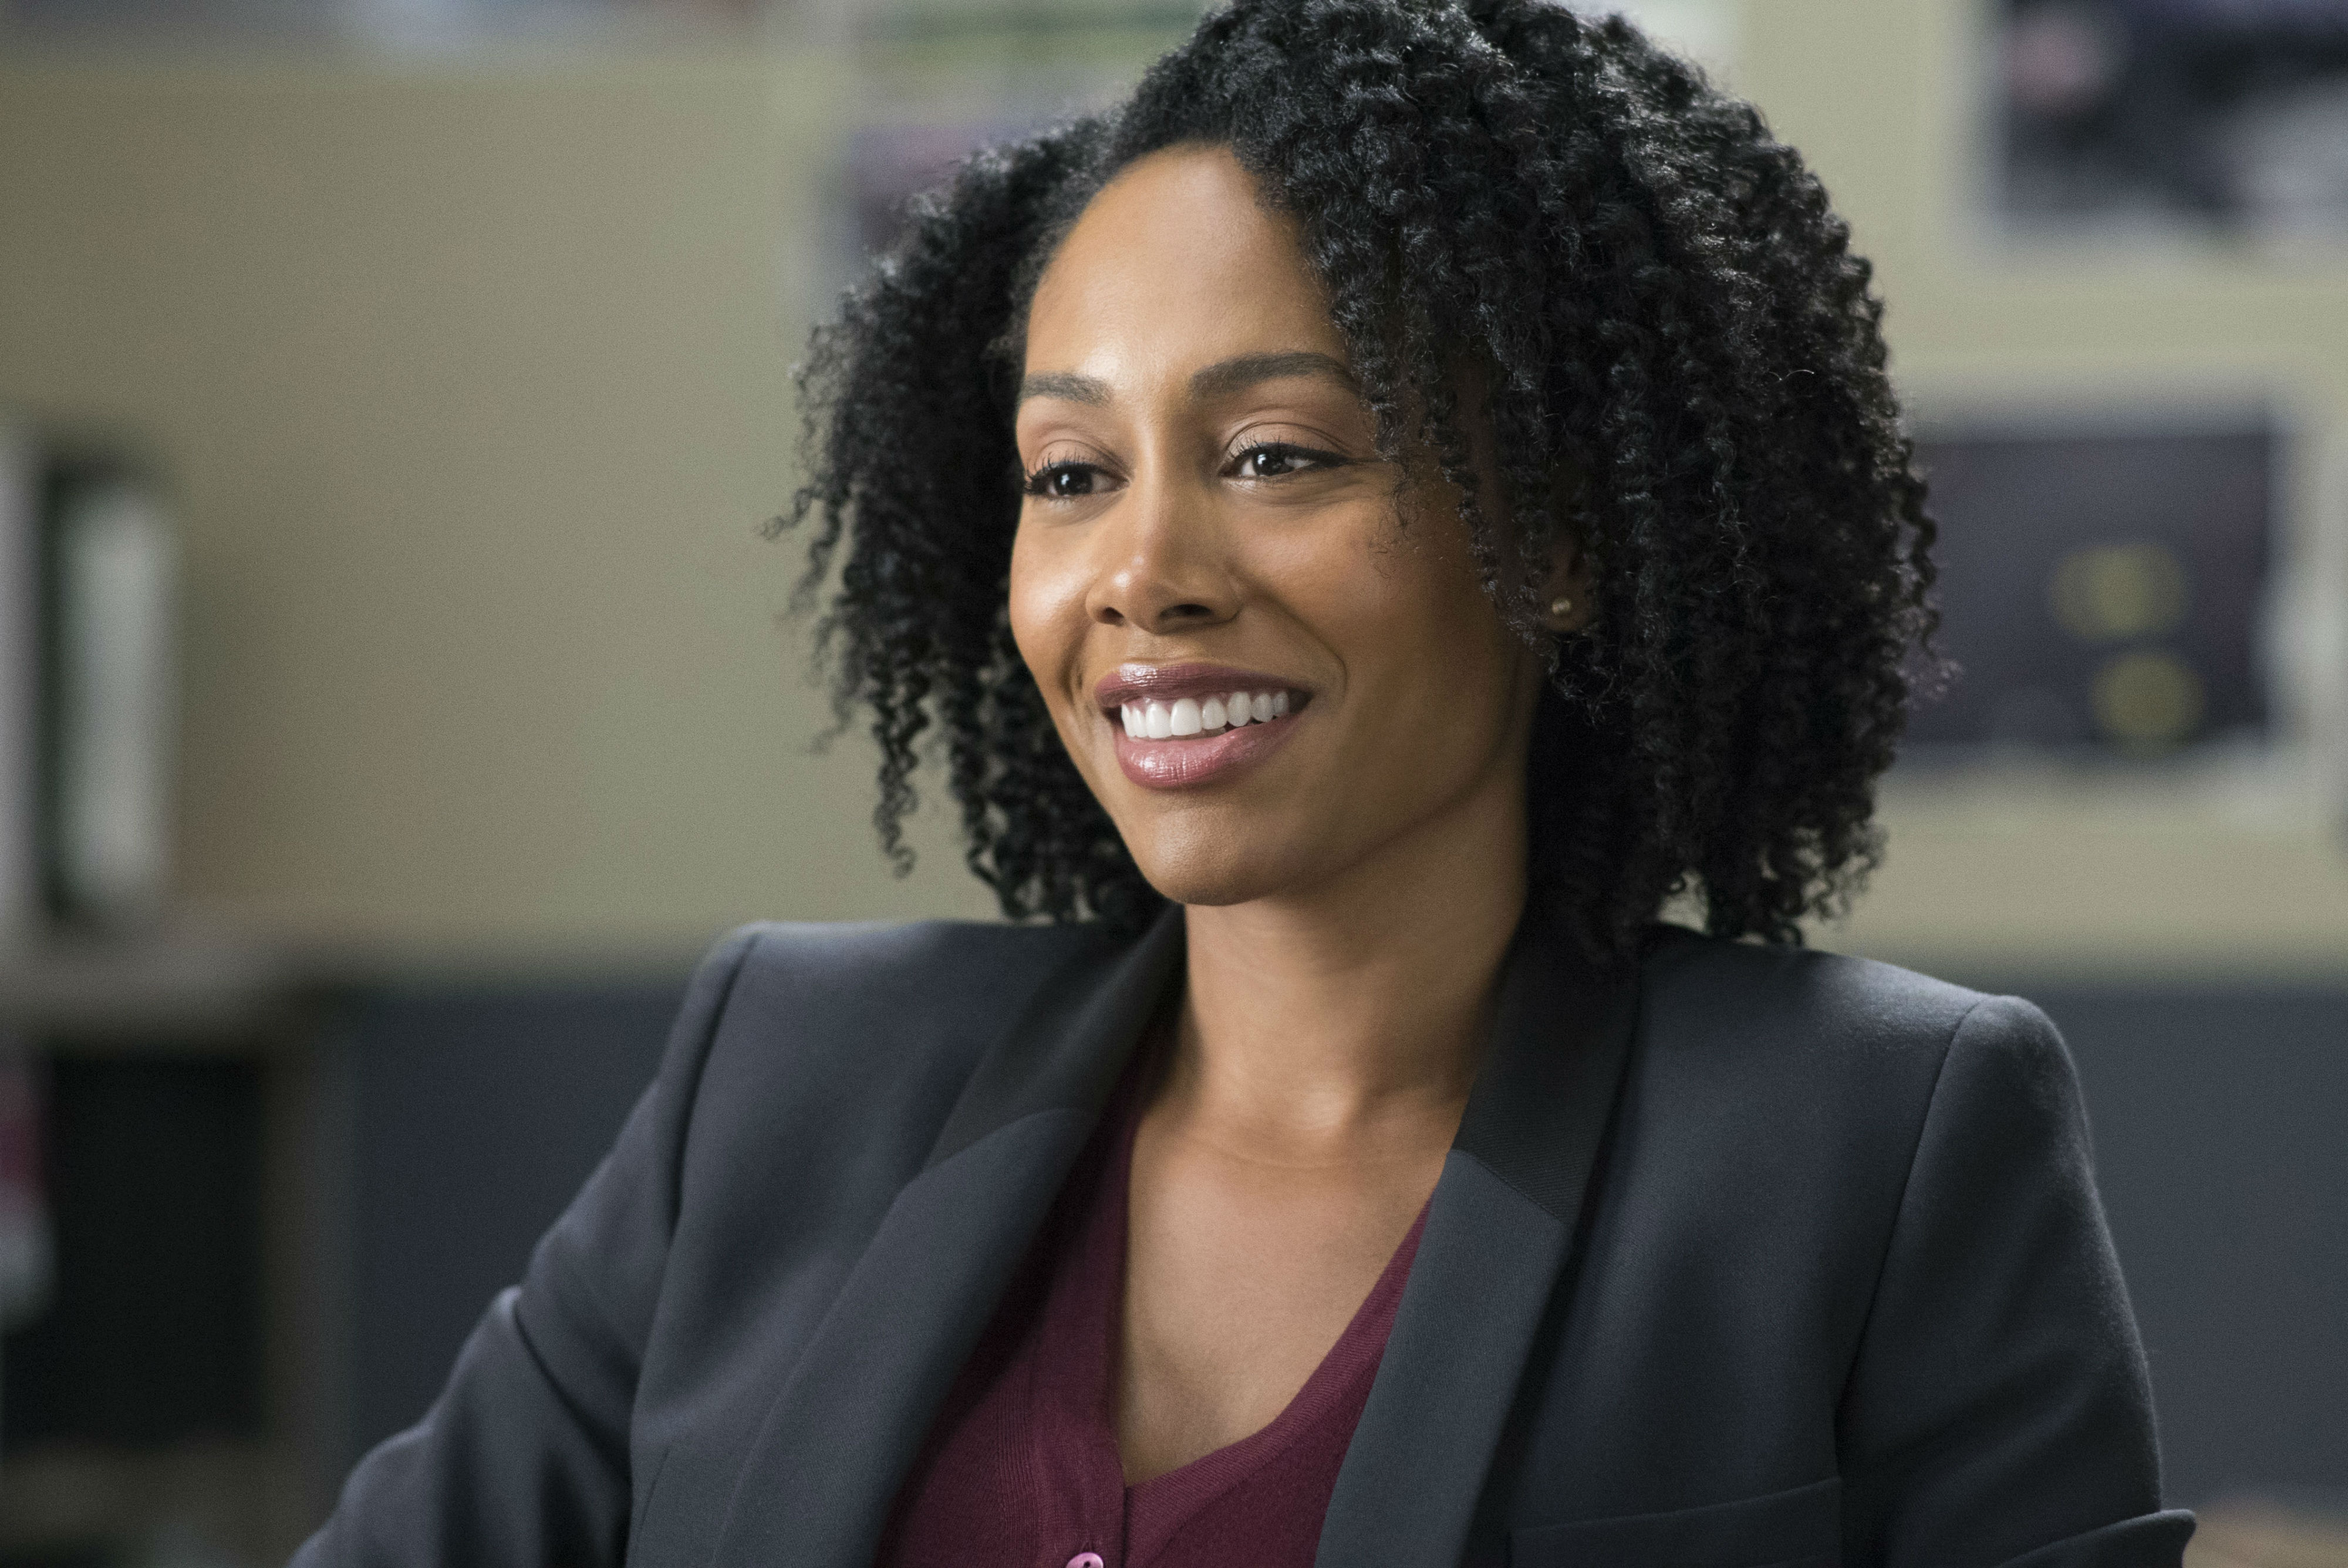 simone missick smile wallpaper background 60947